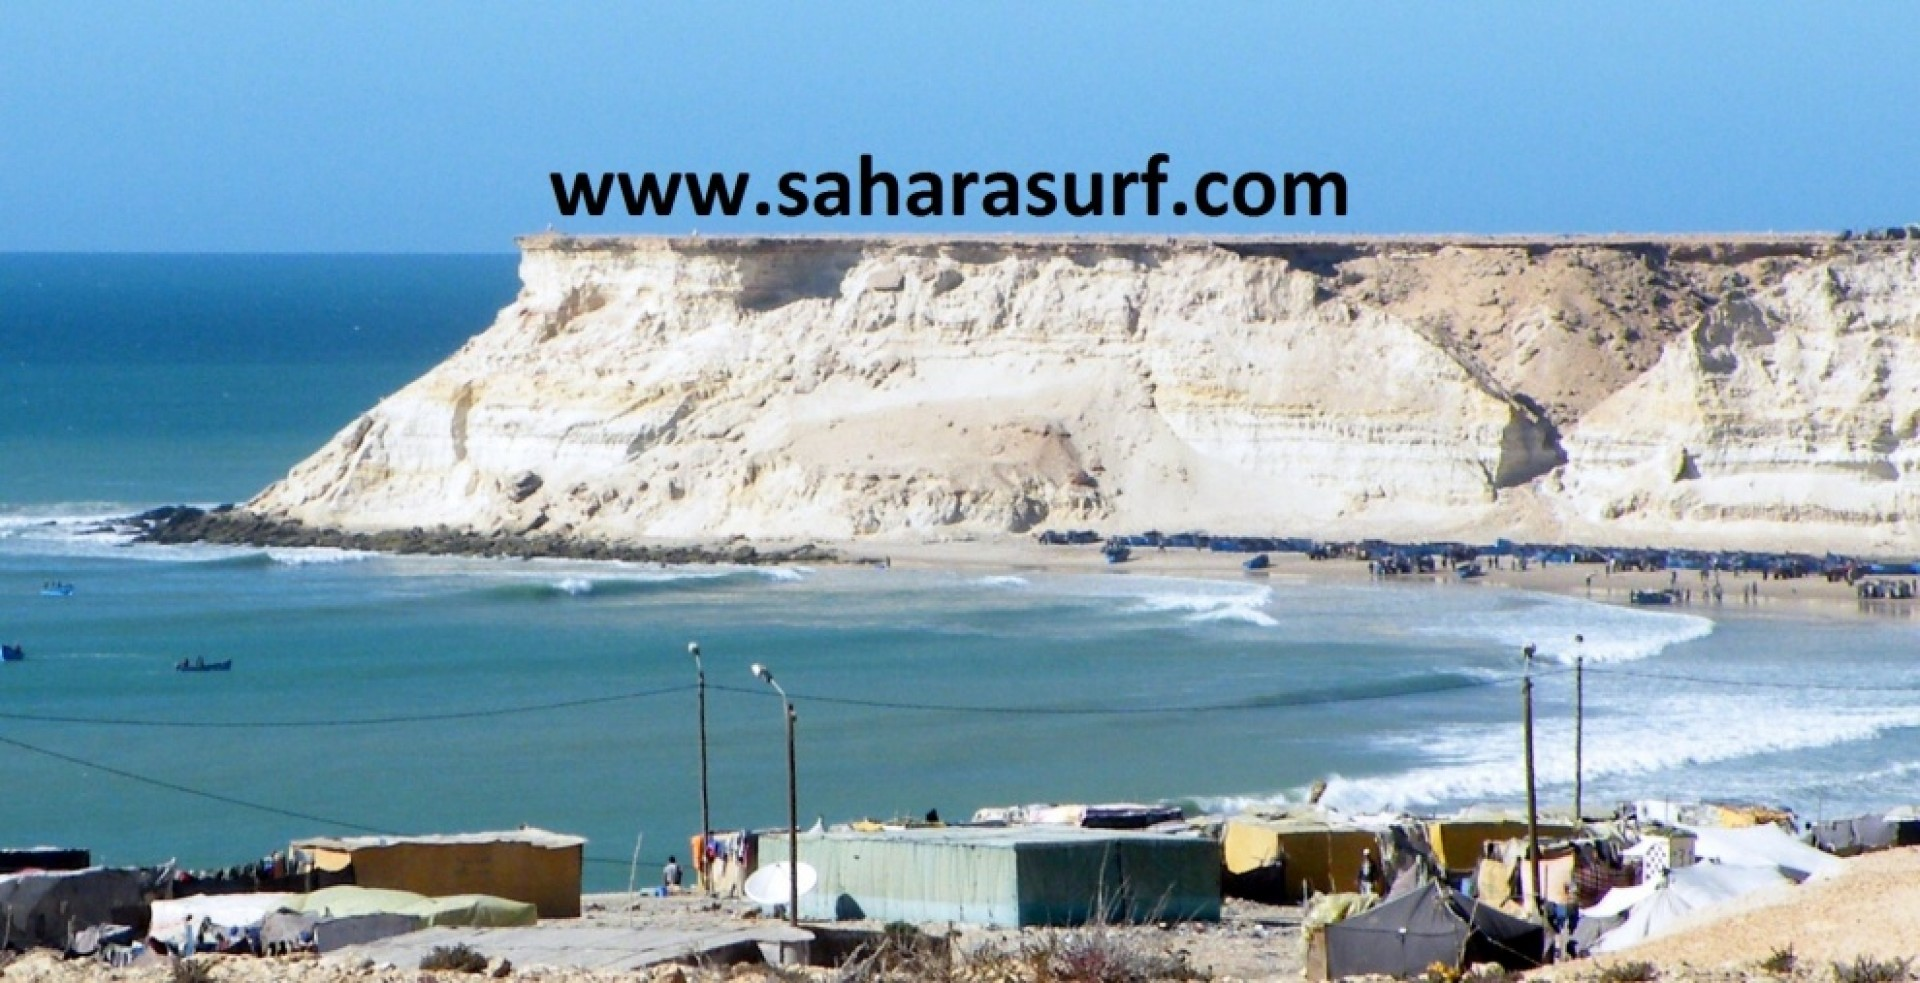 www.saharasurf.com's photo of Pointe de l'Or